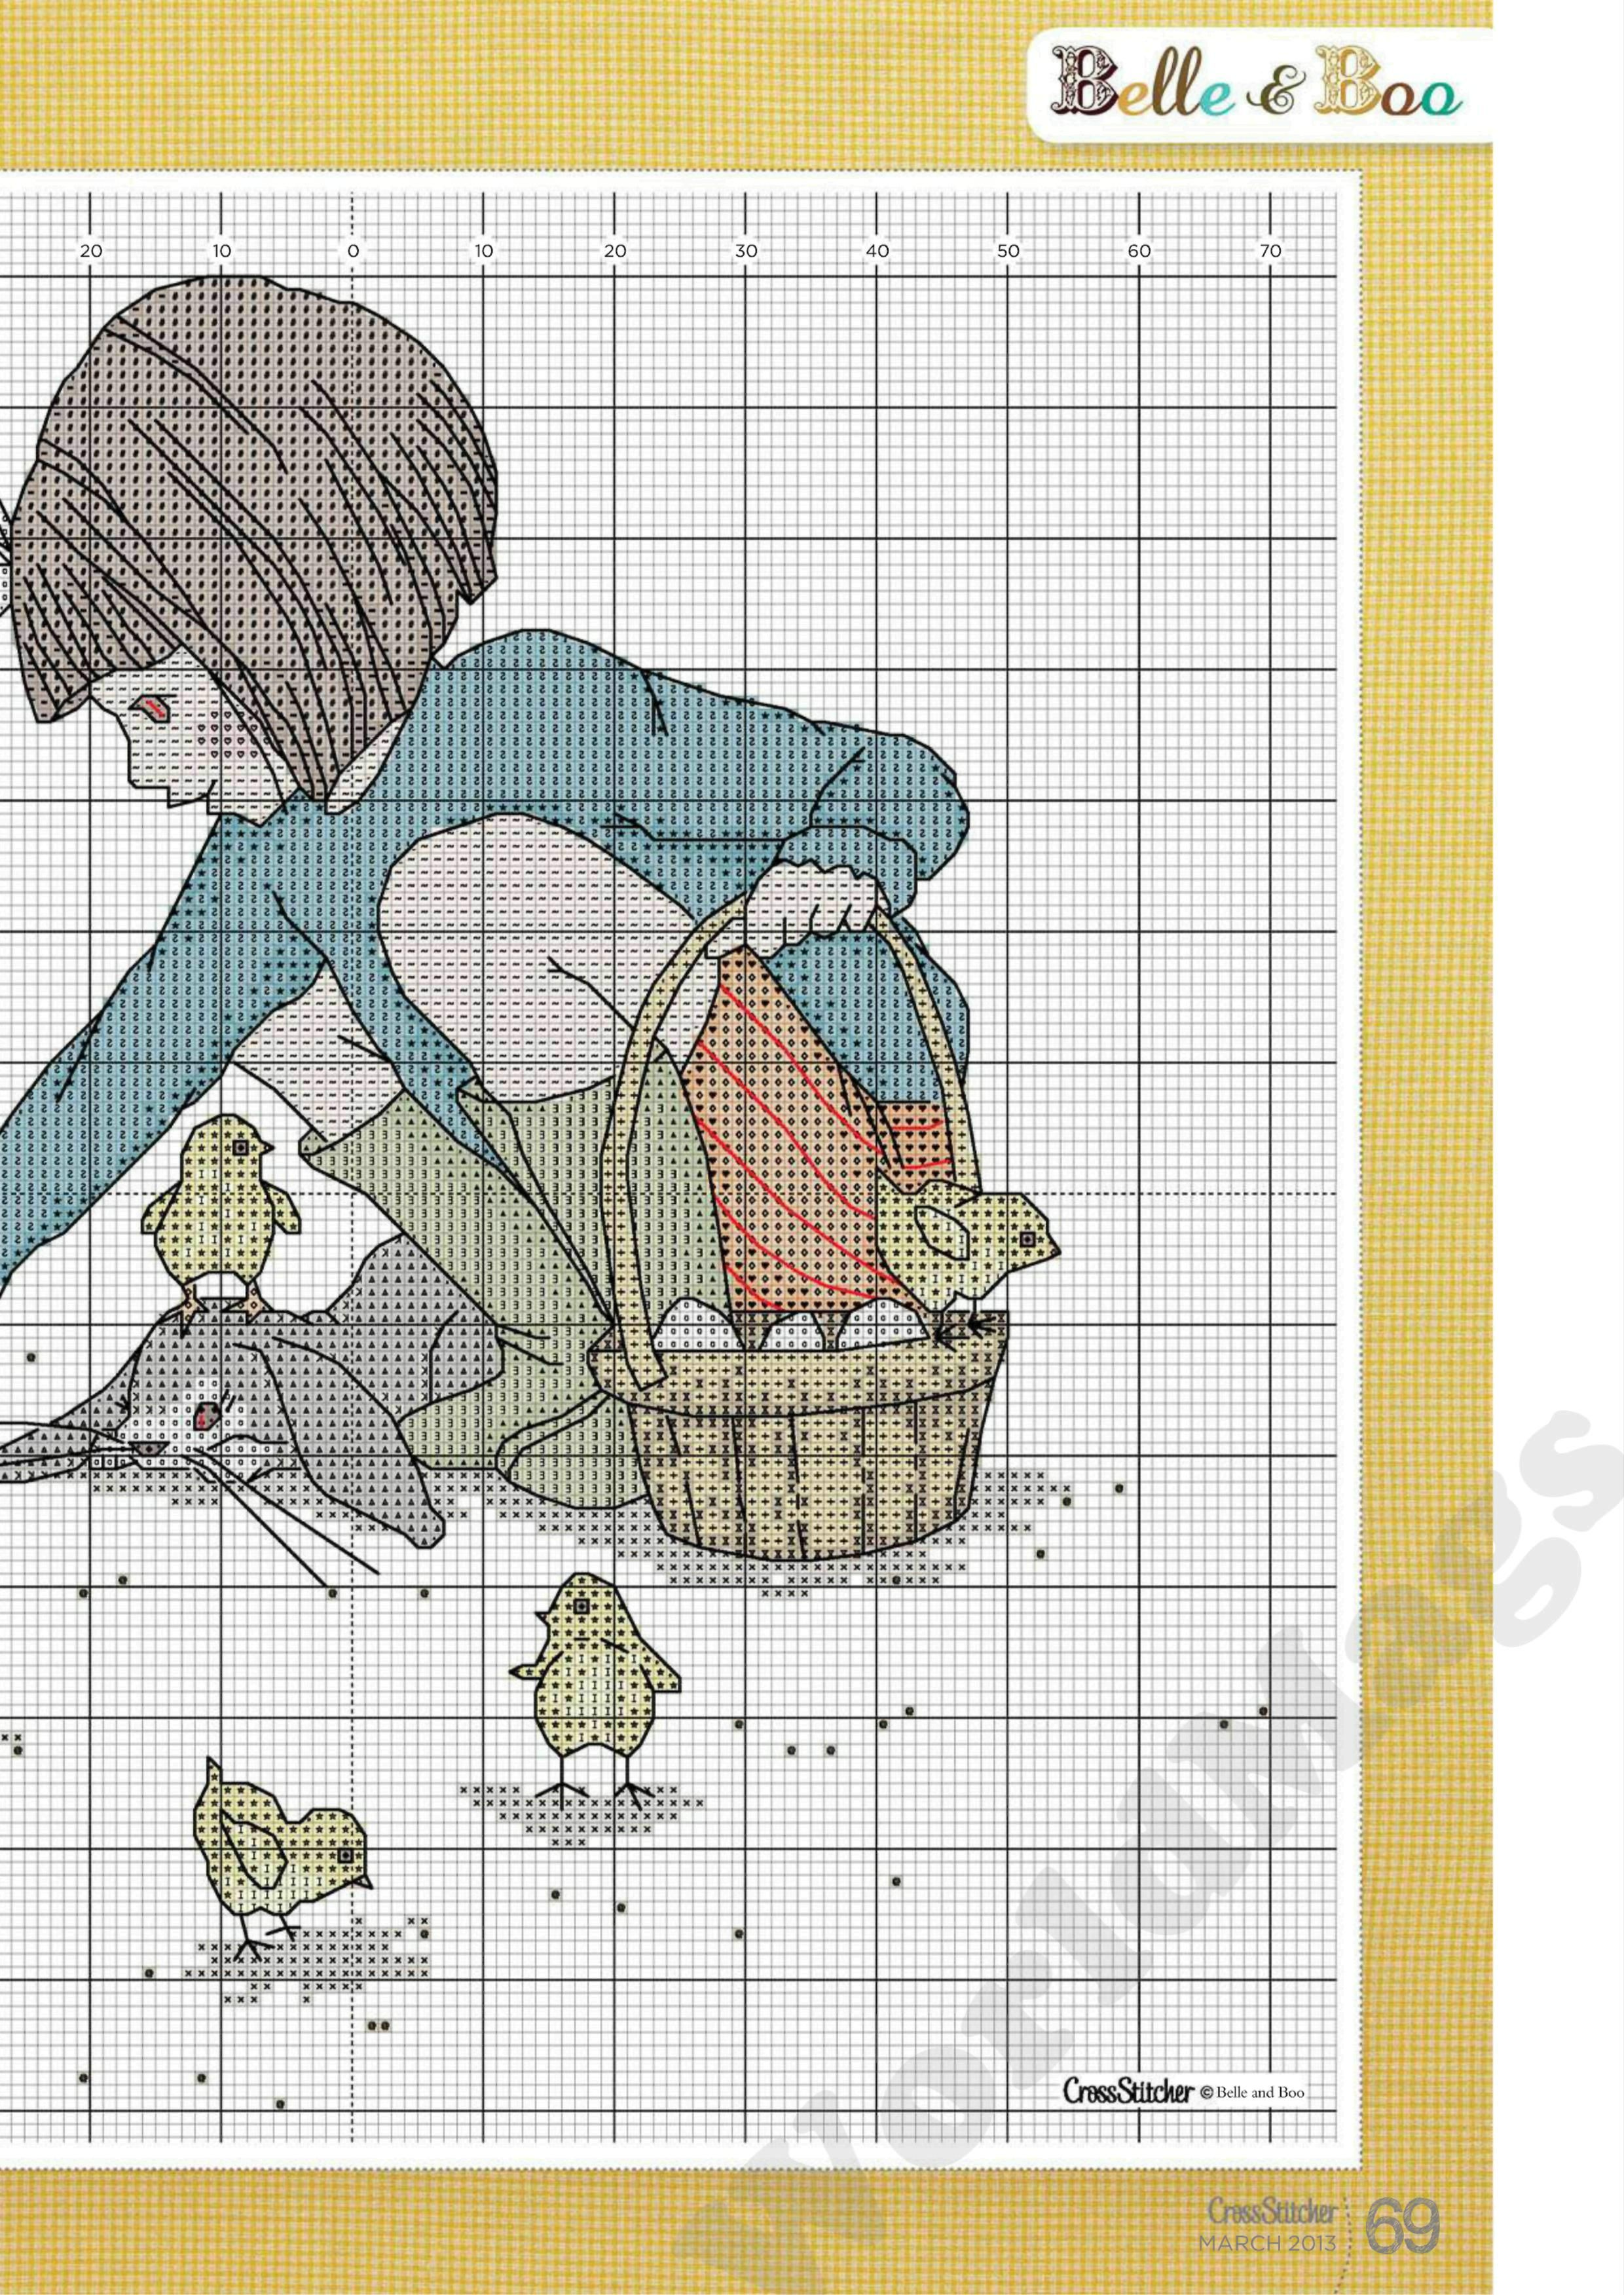 Bella, la Belle and Boo | Belle and Boo | Pinterest | Cross Stitch ...